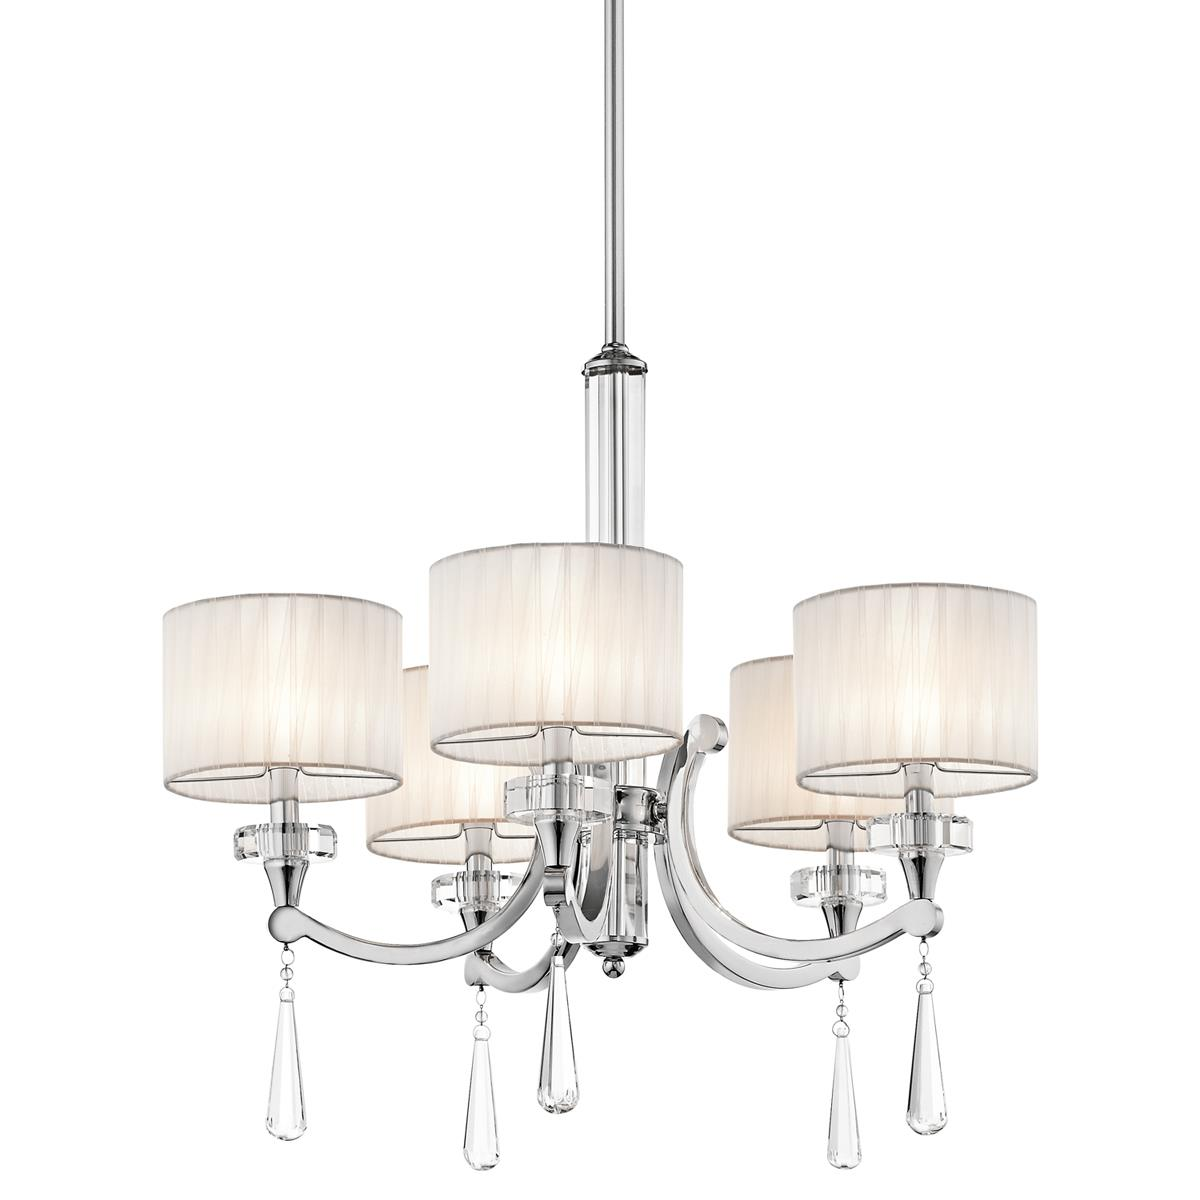 Kichler Lighting 42631ch Shipped Direct